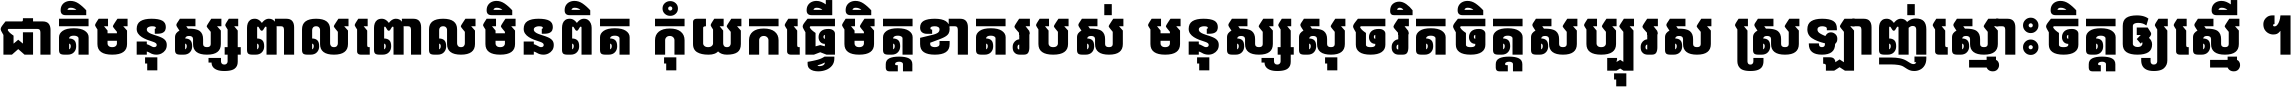 Noto Sans Khmer UI ExtraCondensed Black